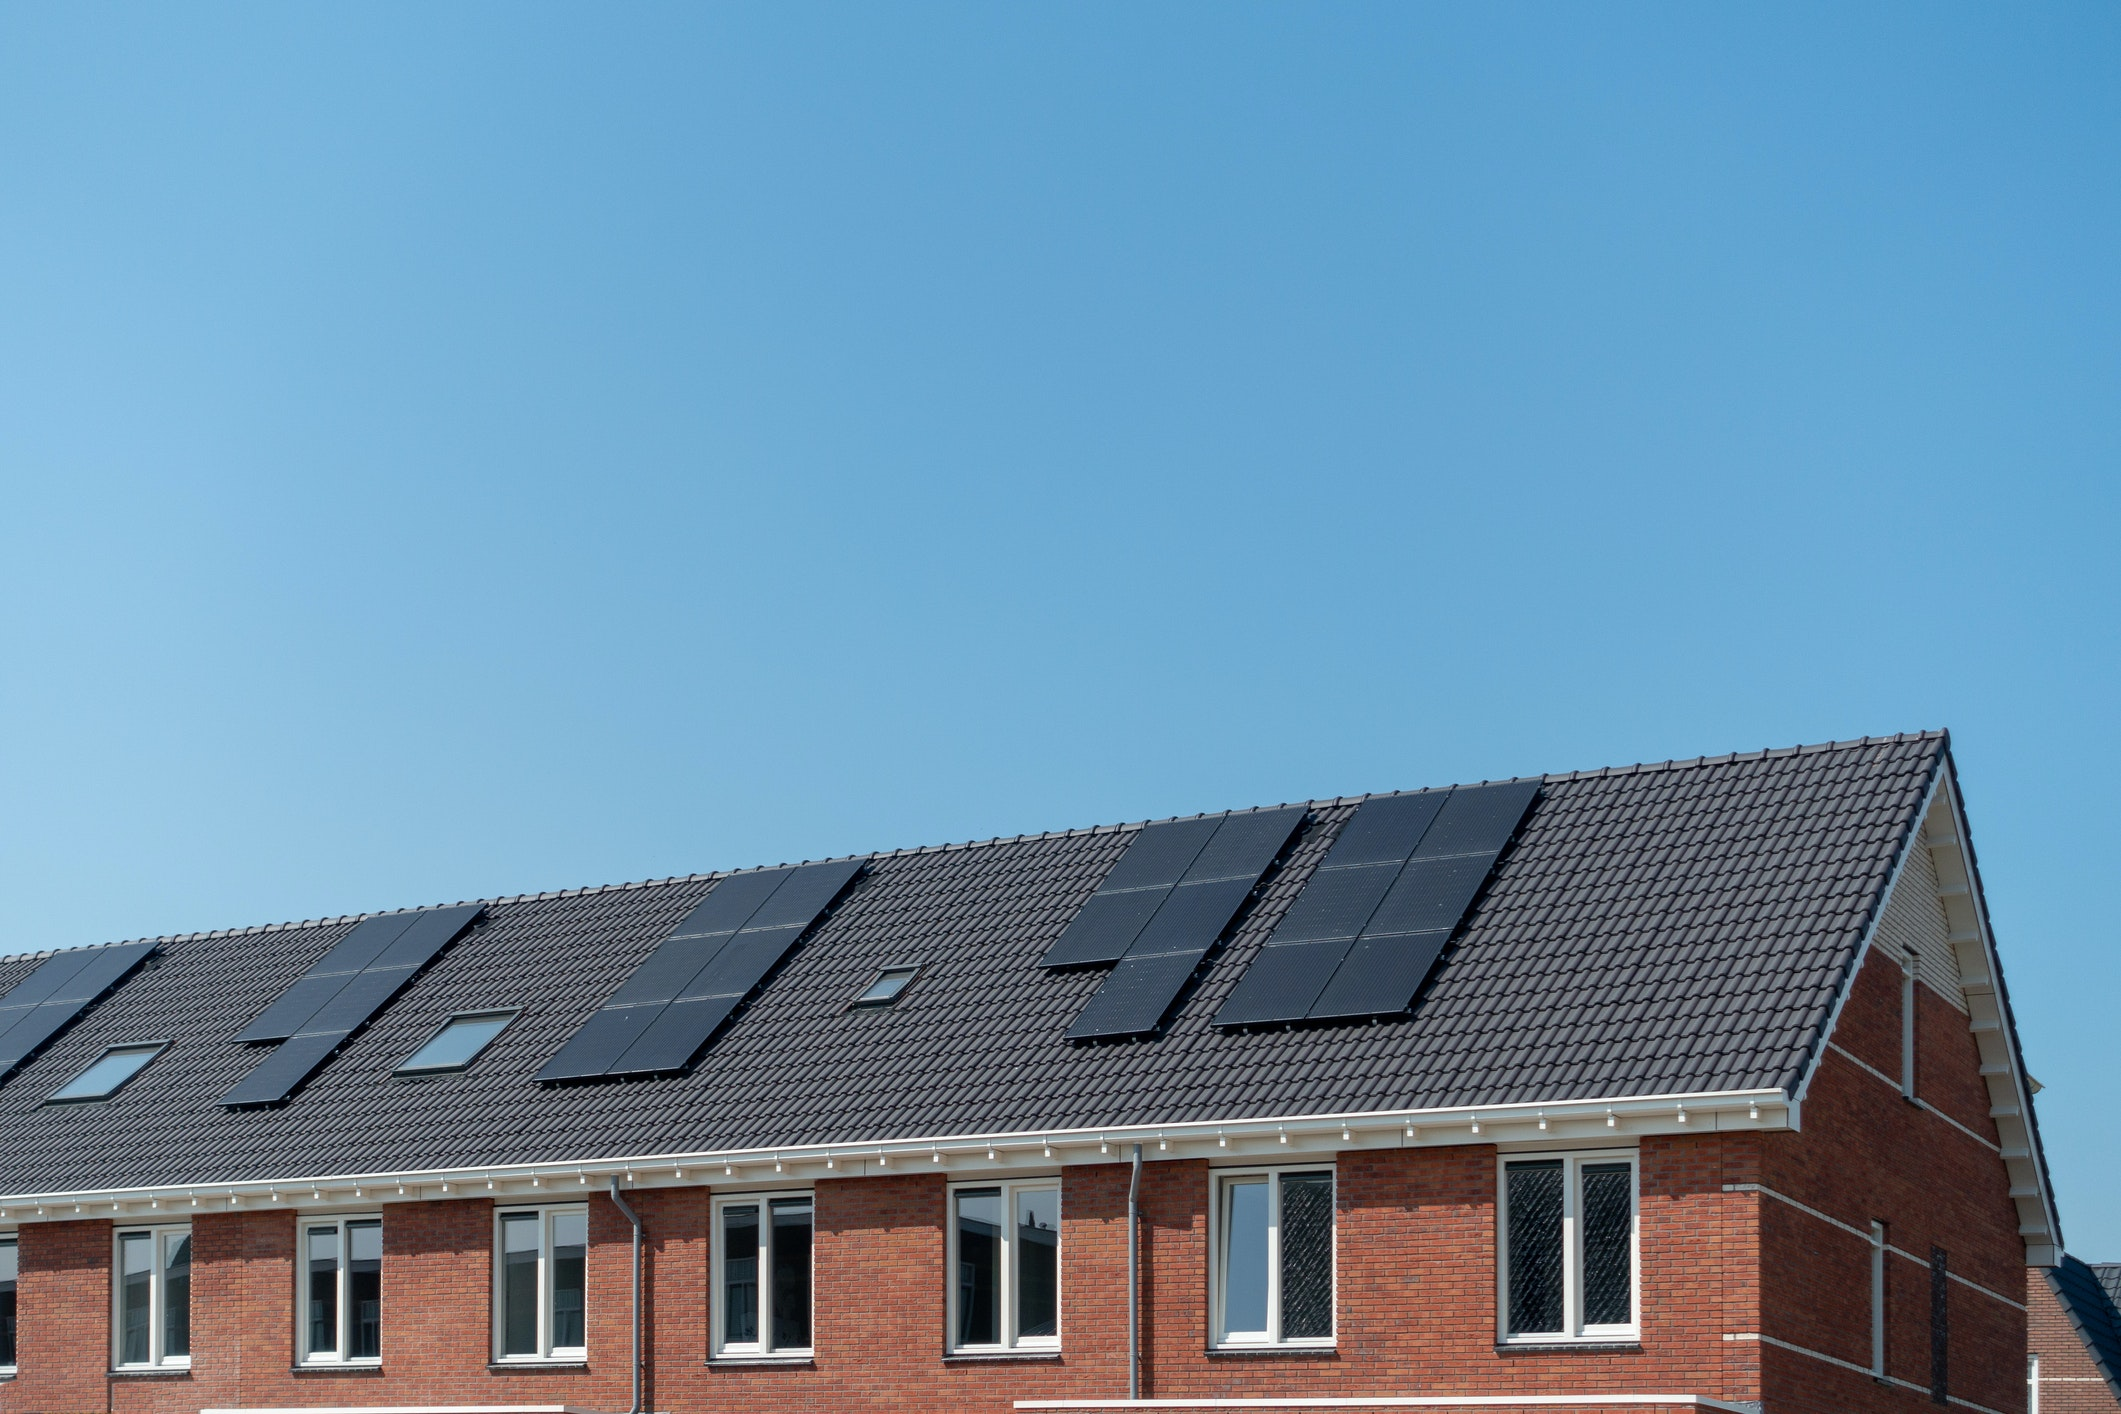 New housing With solar panels allready on the roof